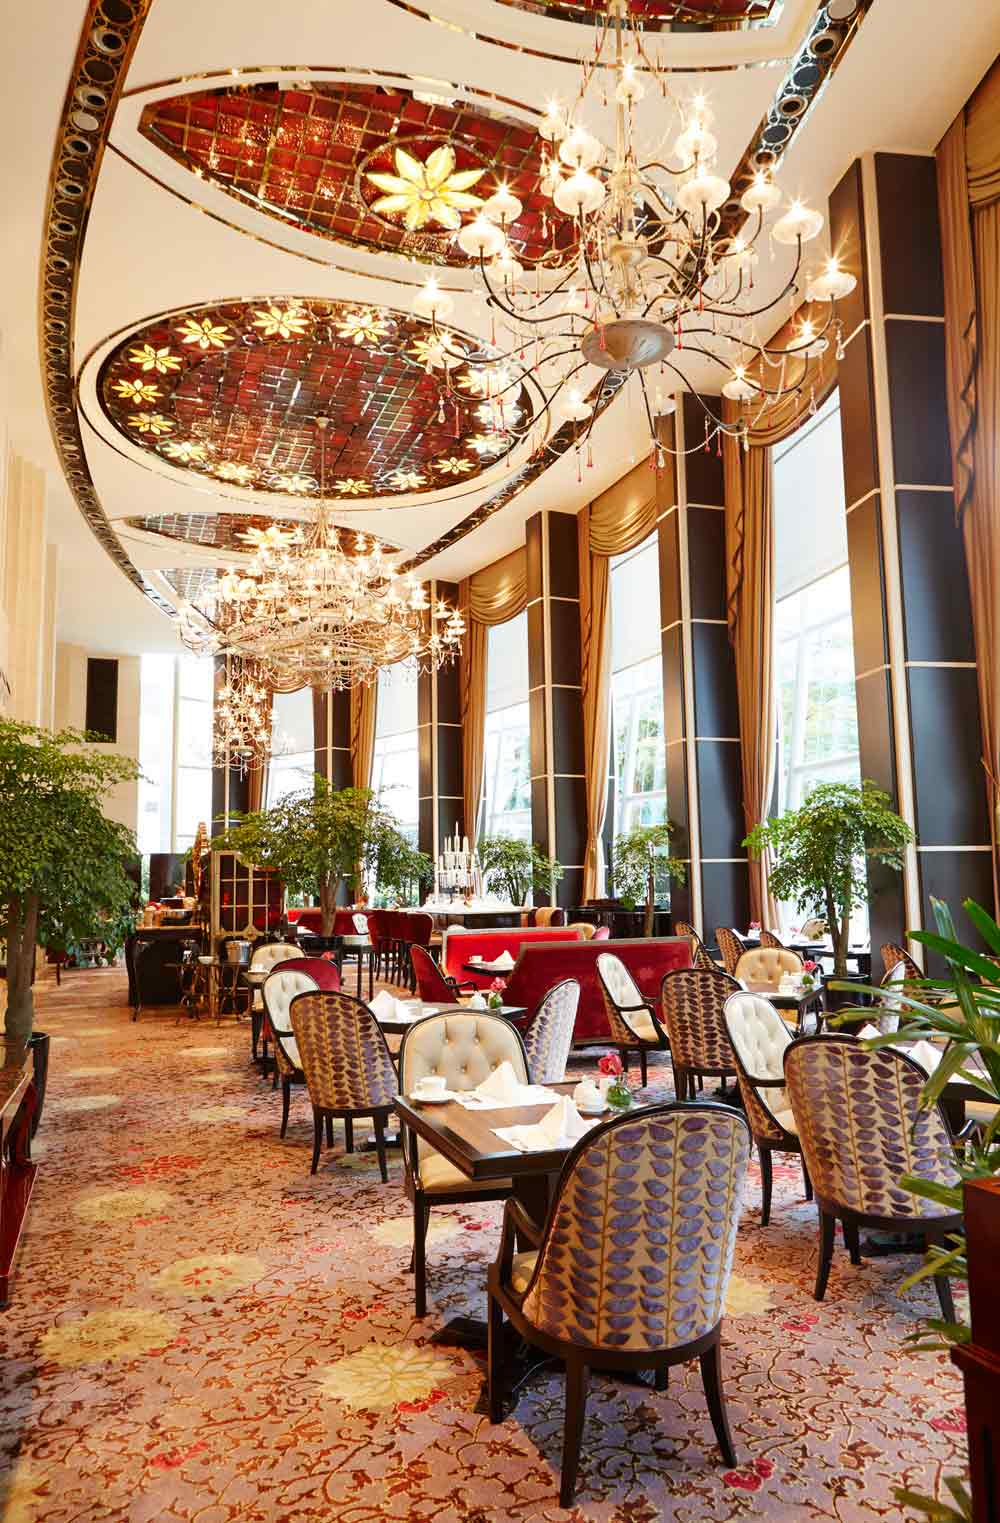 Brasserie Les SaveursA Dining Venue At The St Regis Singapore